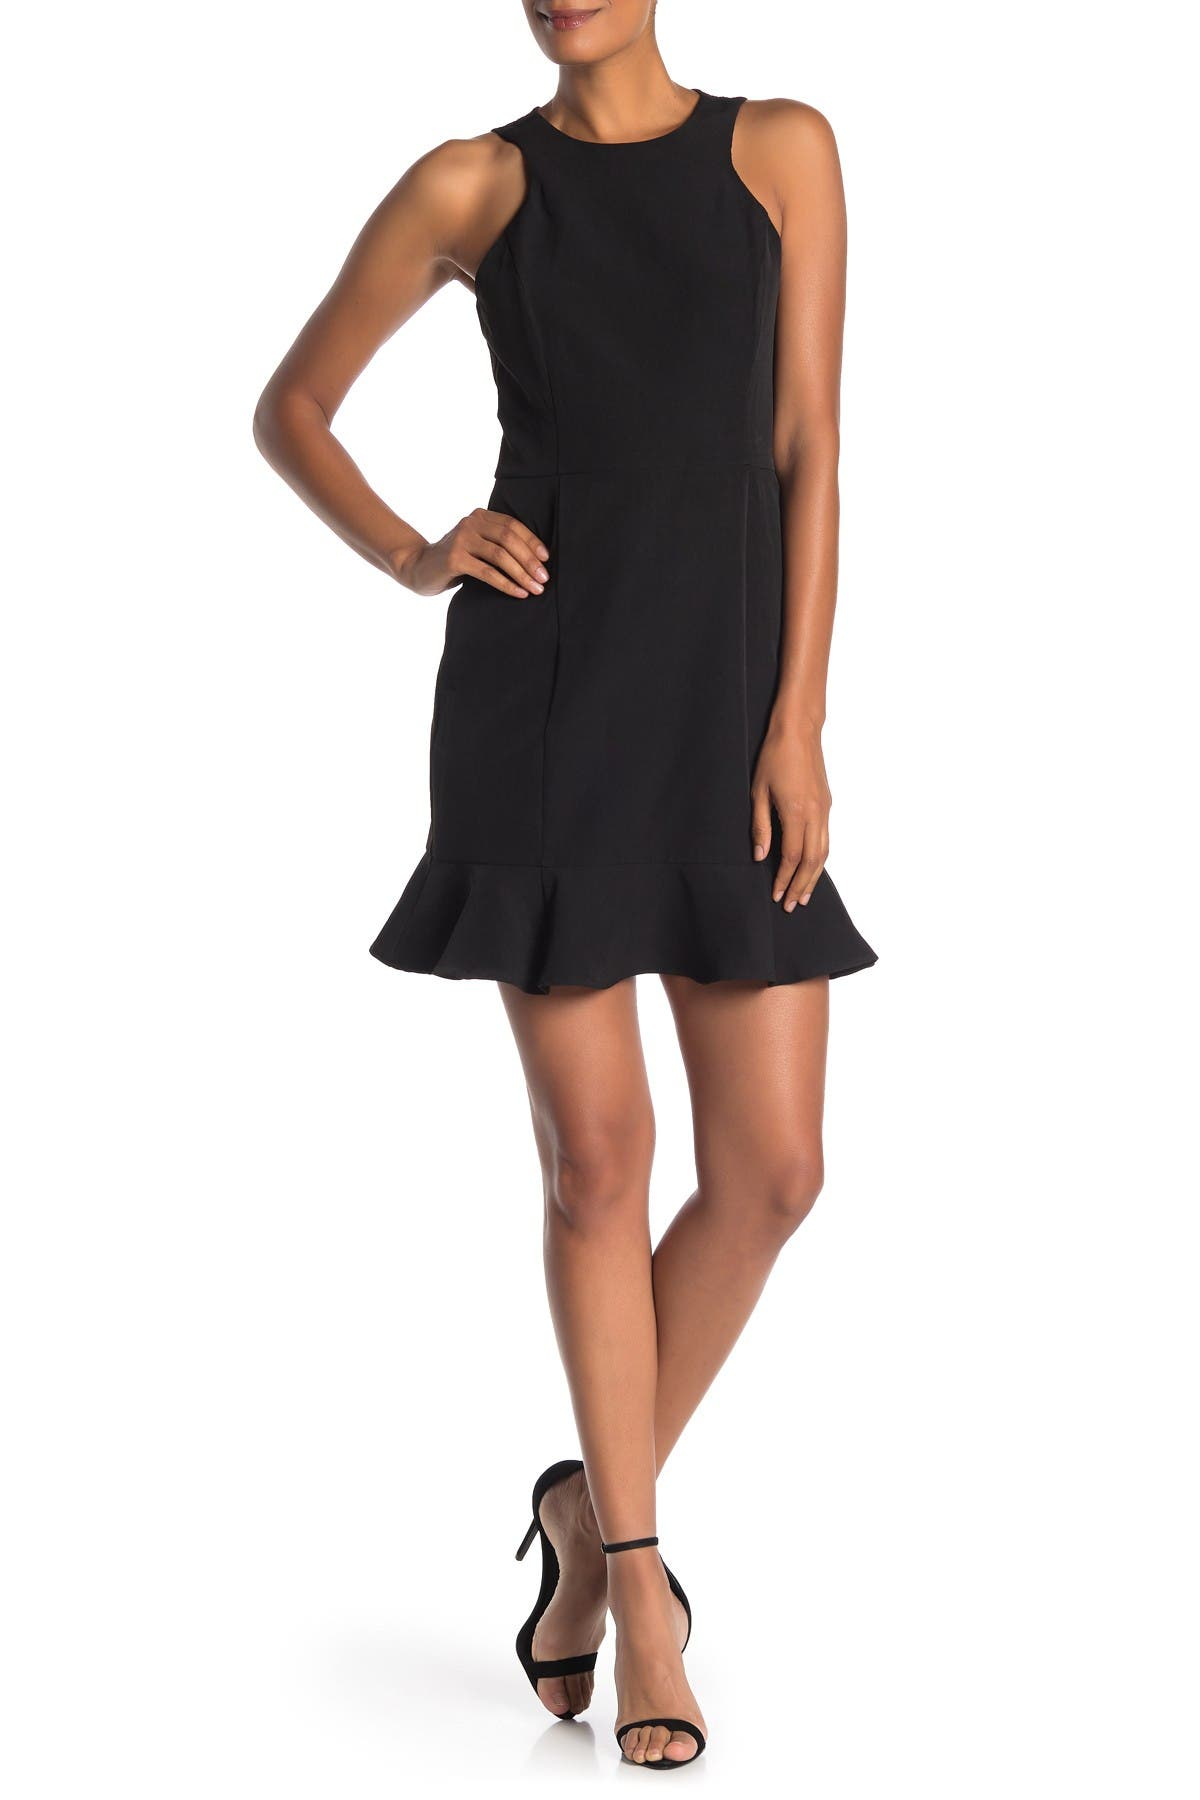 Image of 19 Cooper Lace Back Flounce Dress